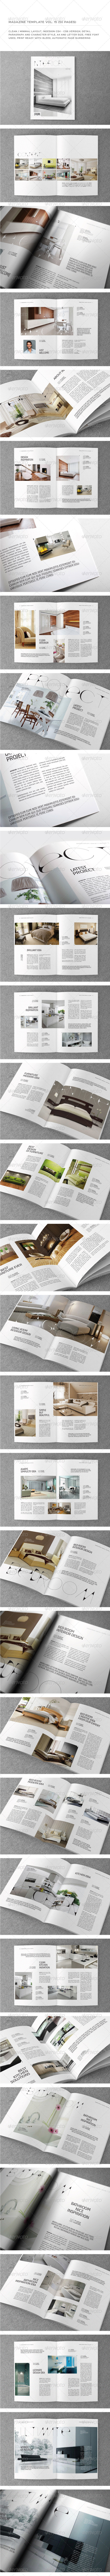 A4/Letter 50 Pages mgz (Vol. 15) - Magazines Print Templates